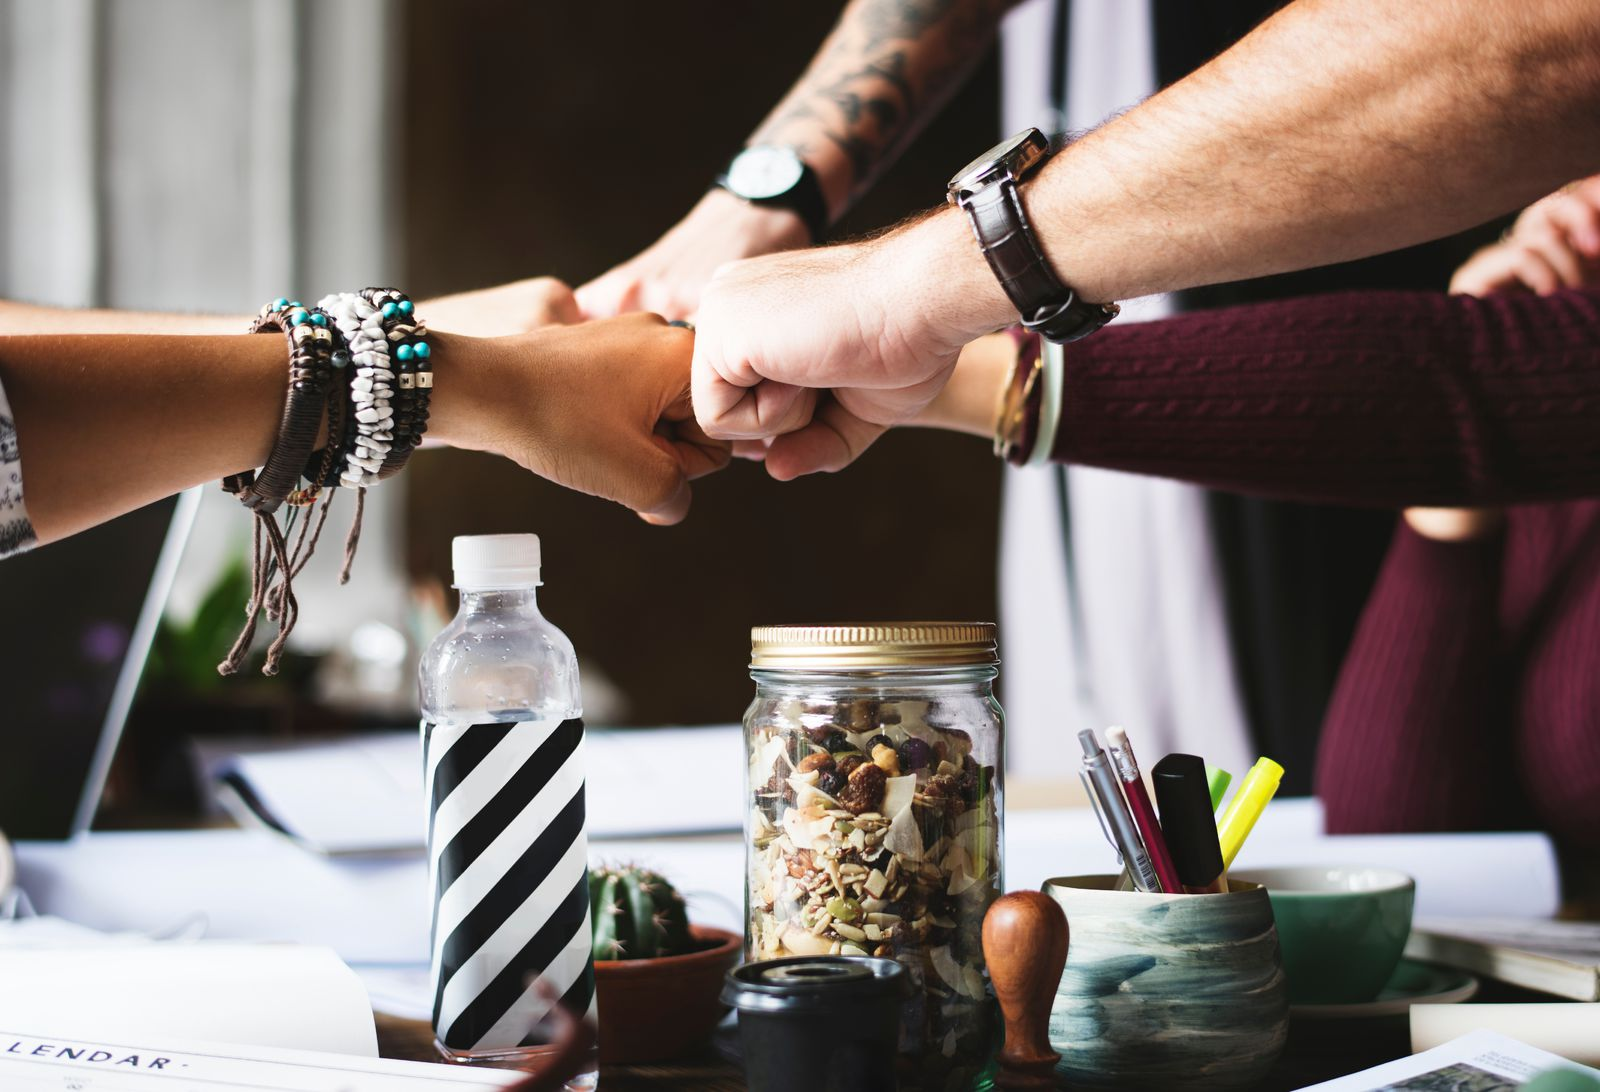 3 Critical Principles to Win Friends and Influence People